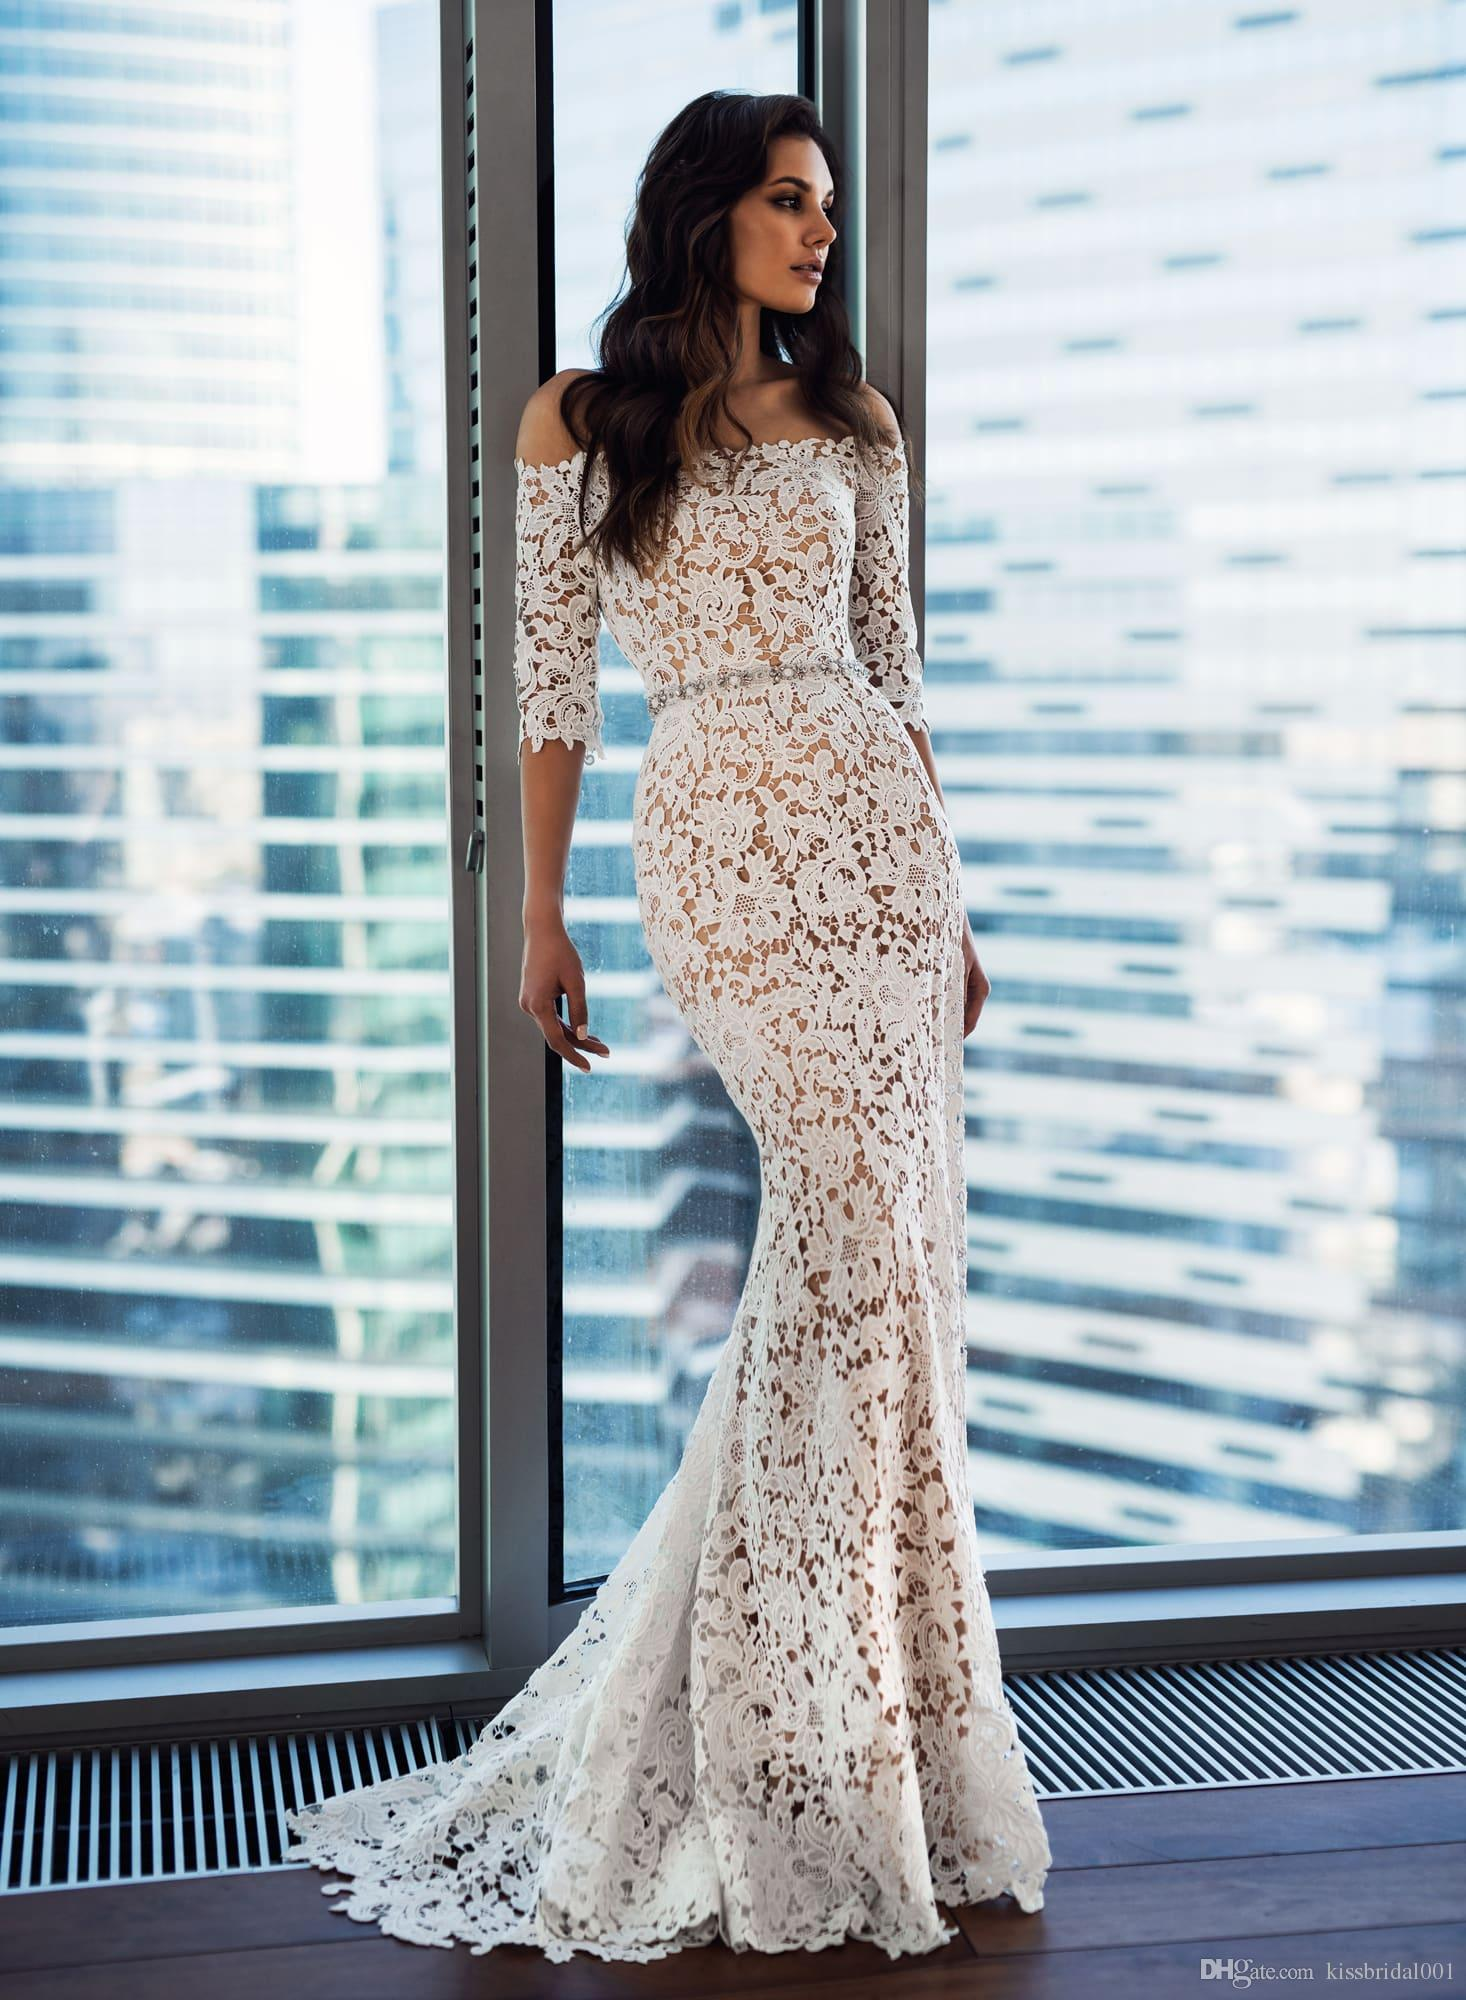 Lace Wedding Dresses Off the Shoulder Half Sleeve Beaded Belt Mermaid Wedding Dress Bridal Gowns 2019 Bride Formal Gown